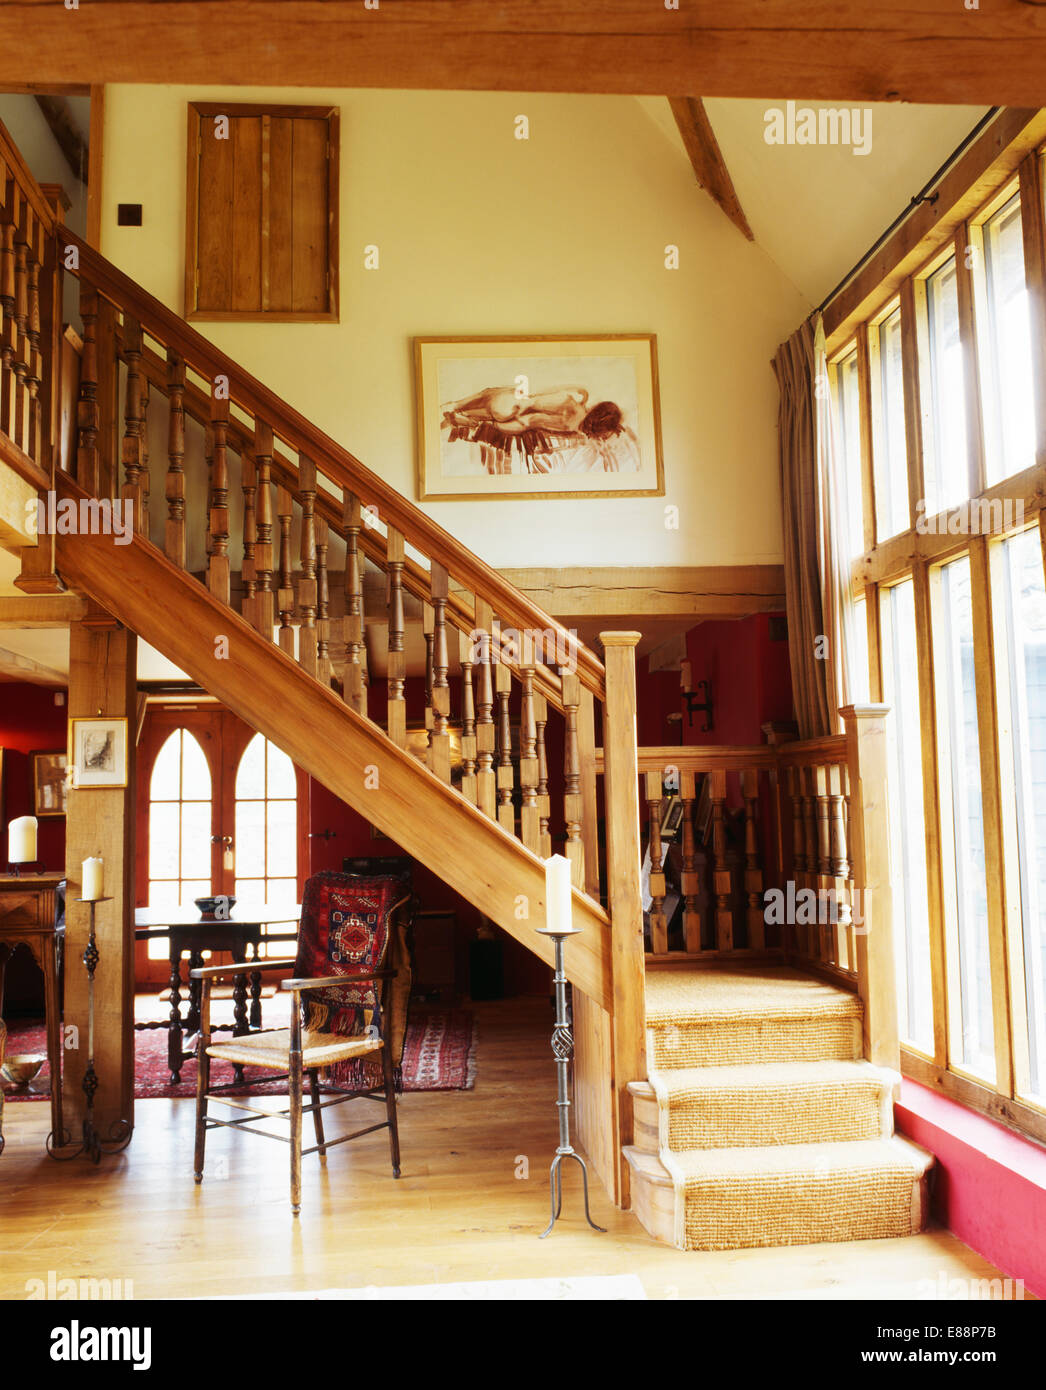 Carved Wooden Banisters On Staircase With Cream Carpet In